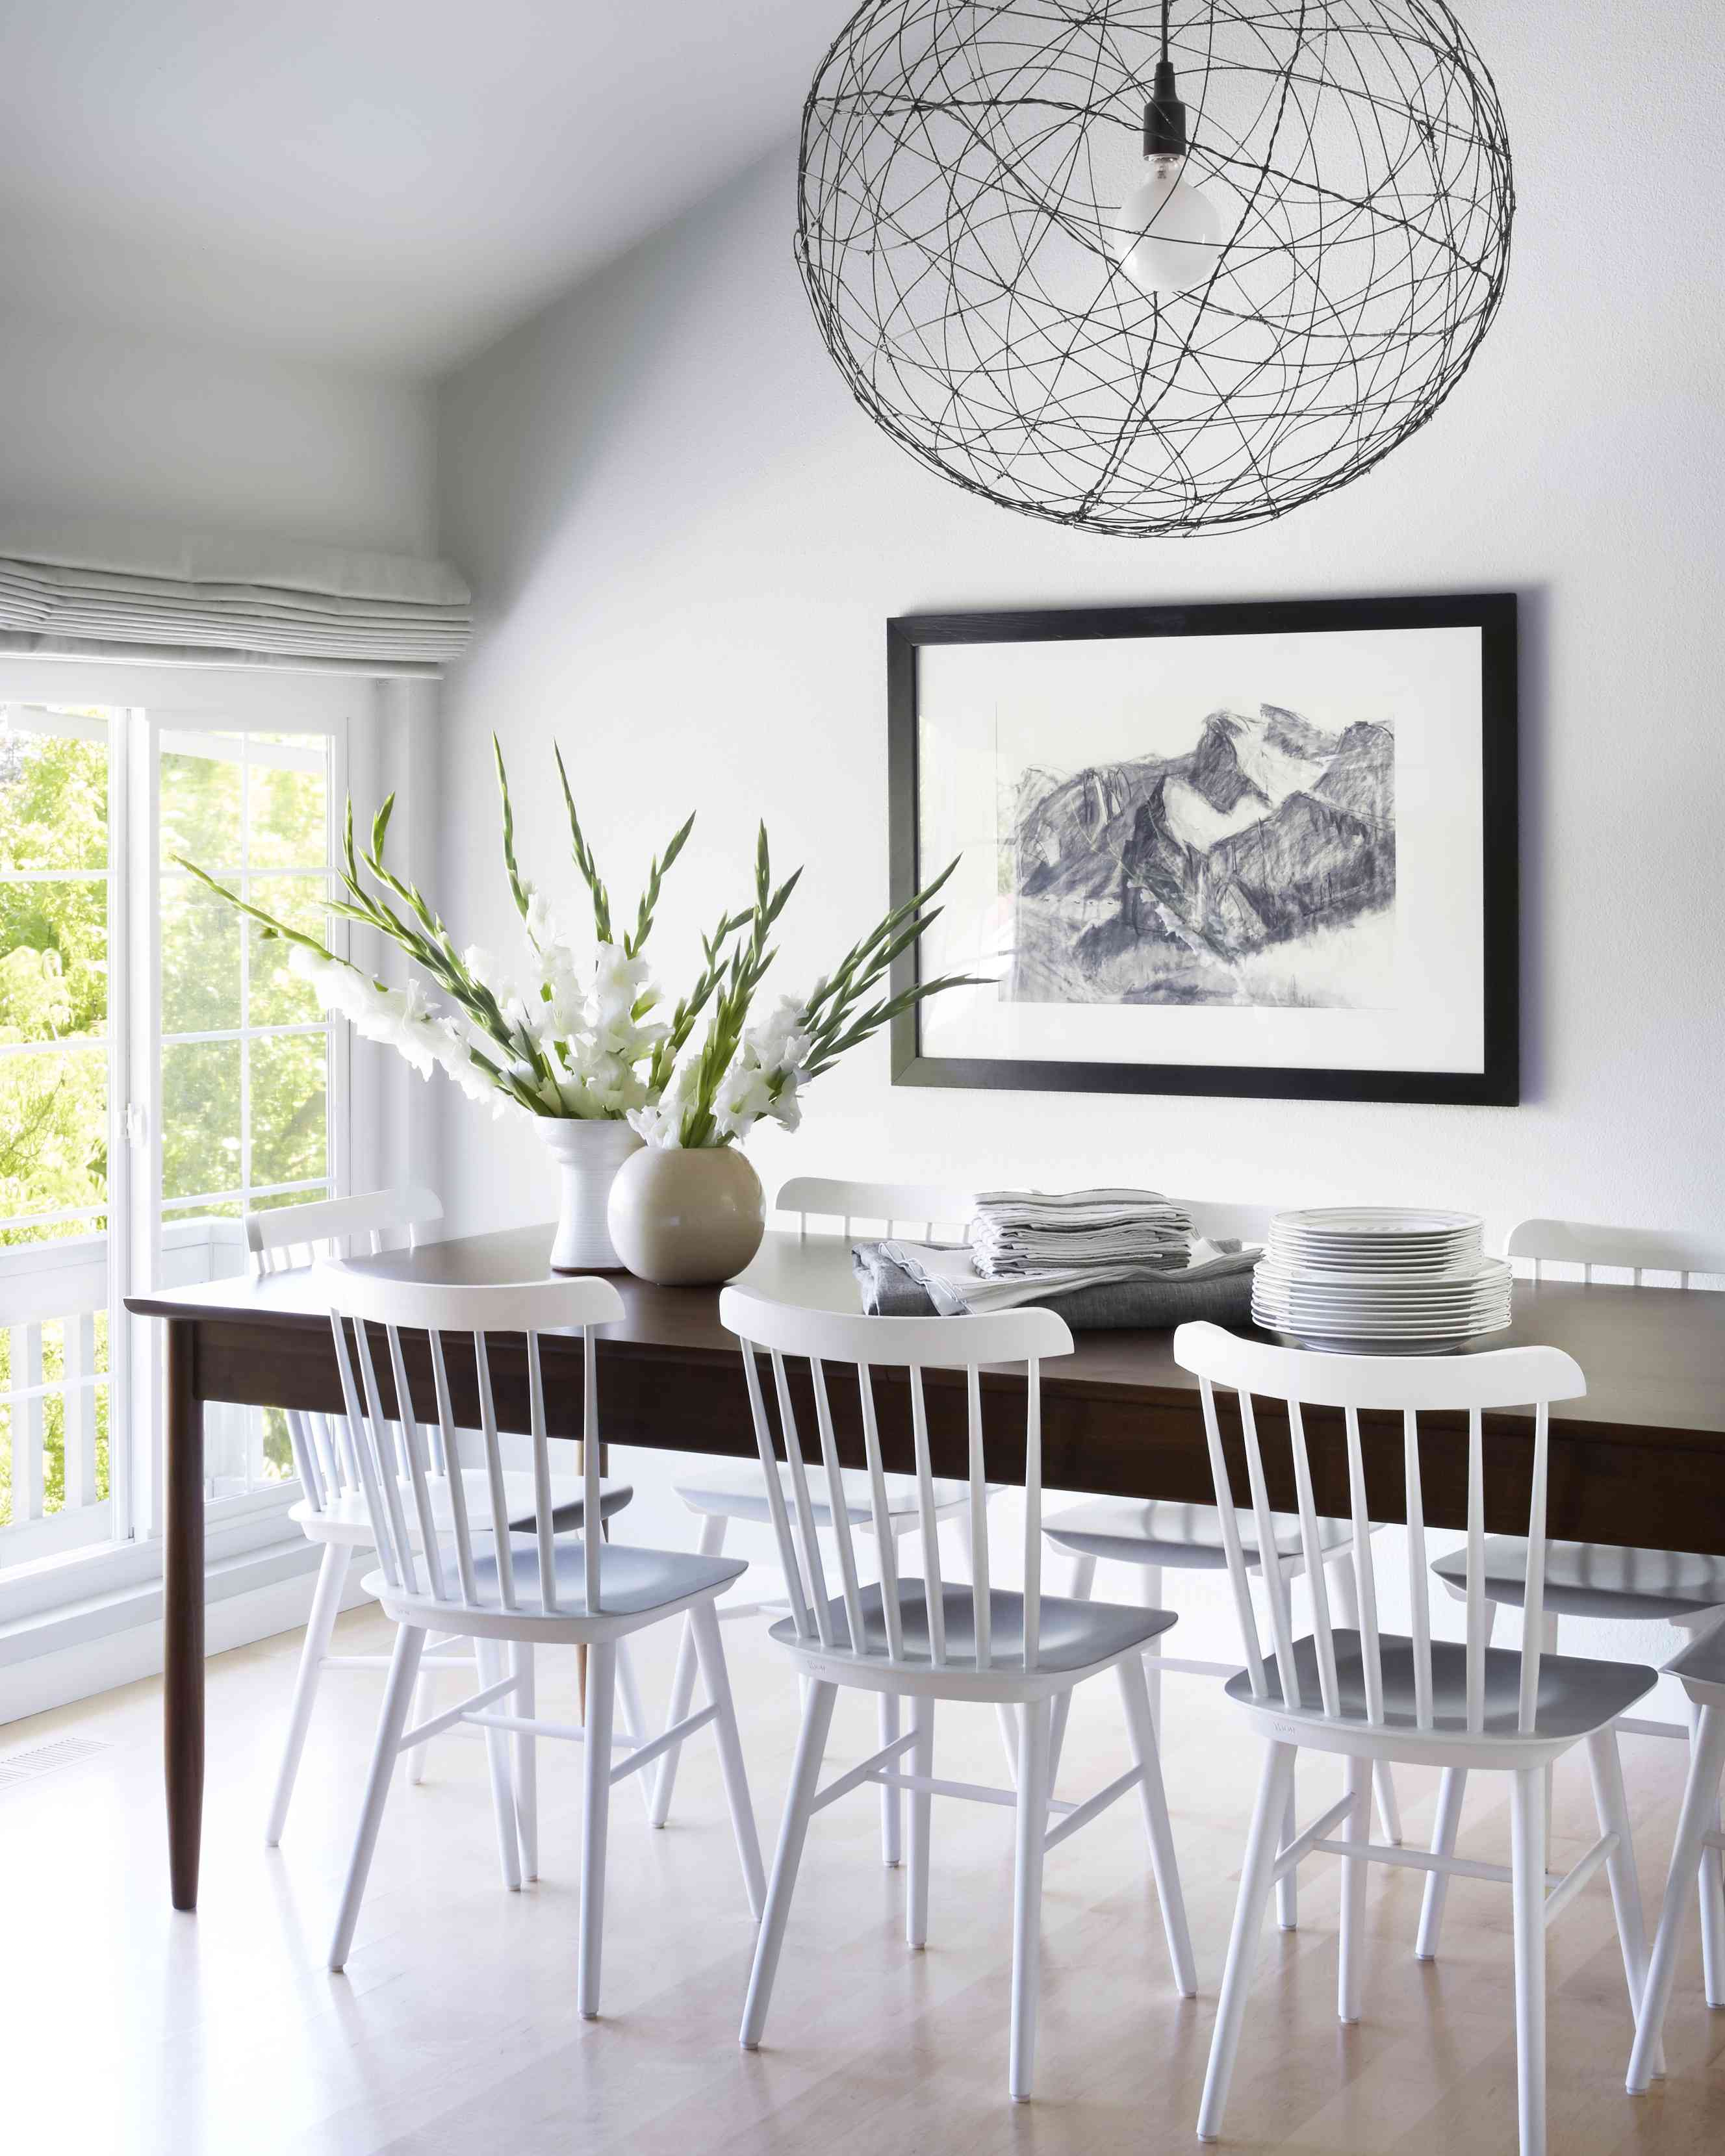 Makeover of the Week - Orlando Soria Transforms a Dated Dining Room into a Farmhouse Chic Oasis